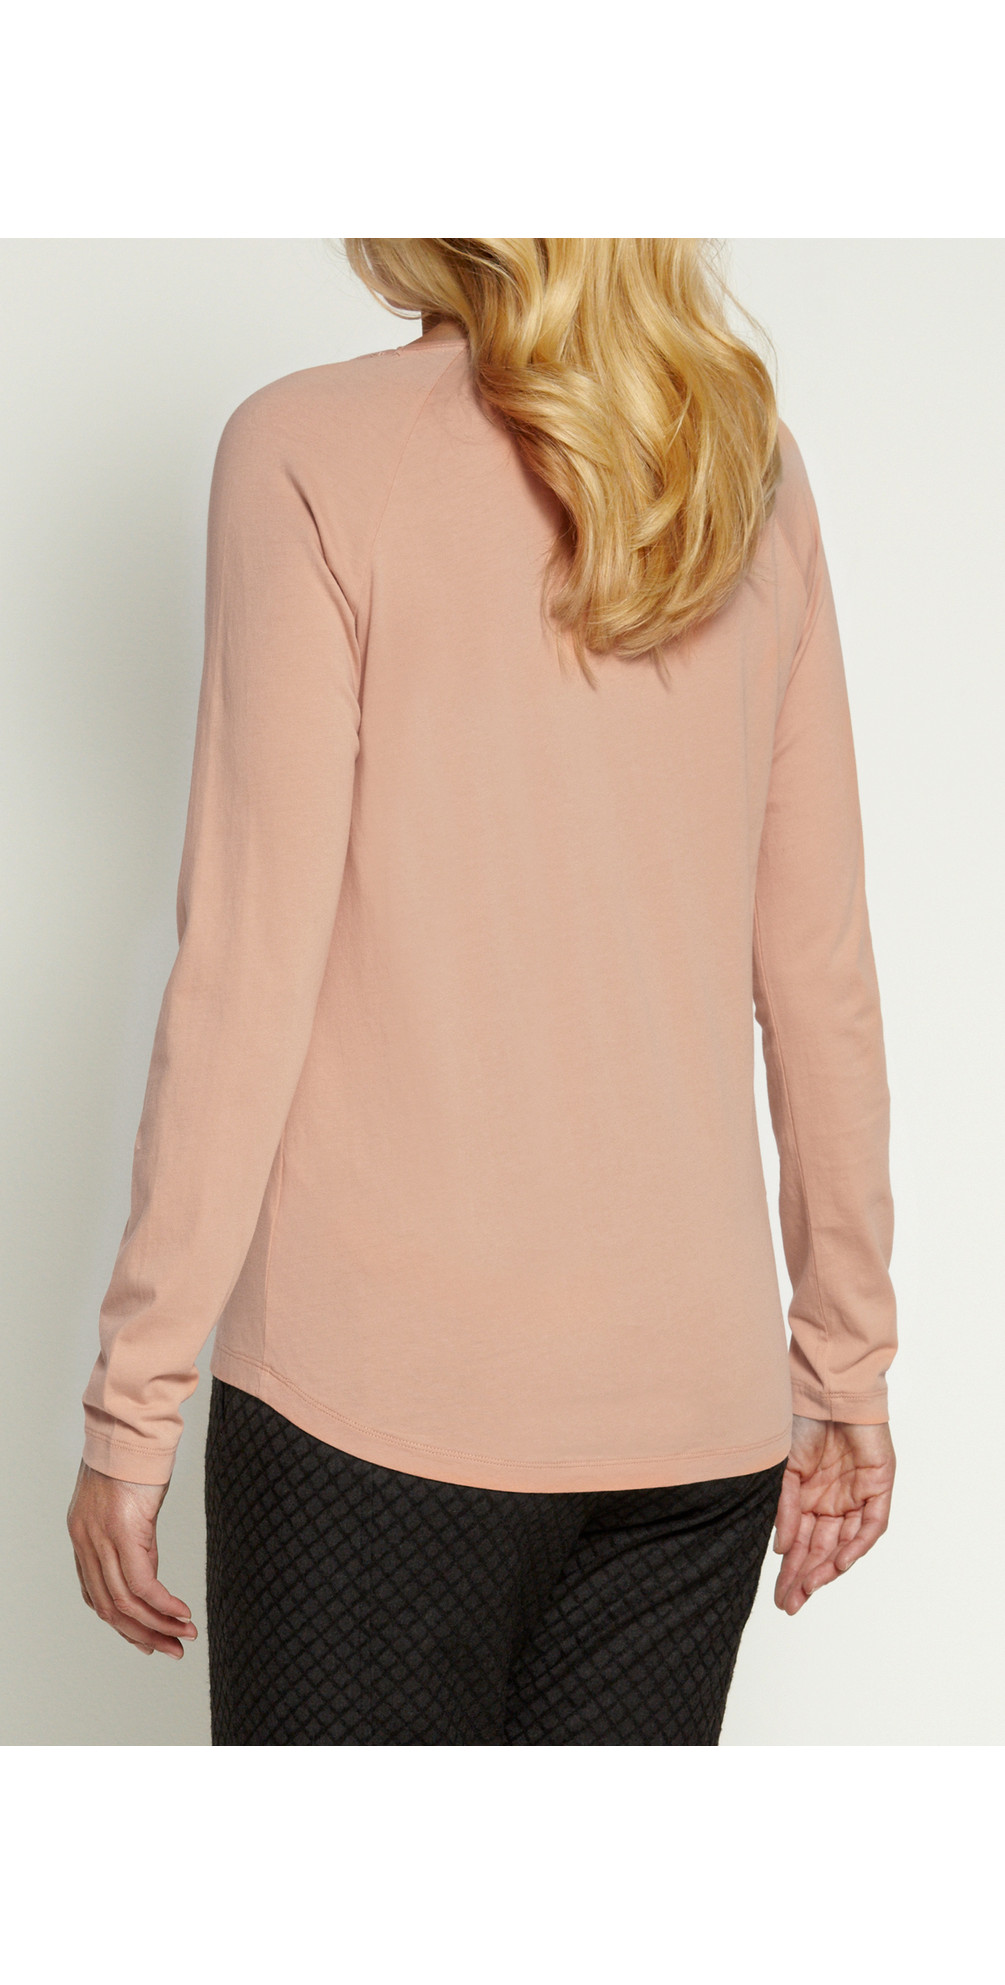 sandwich clothing single jersey top in cameo rose. Black Bedroom Furniture Sets. Home Design Ideas